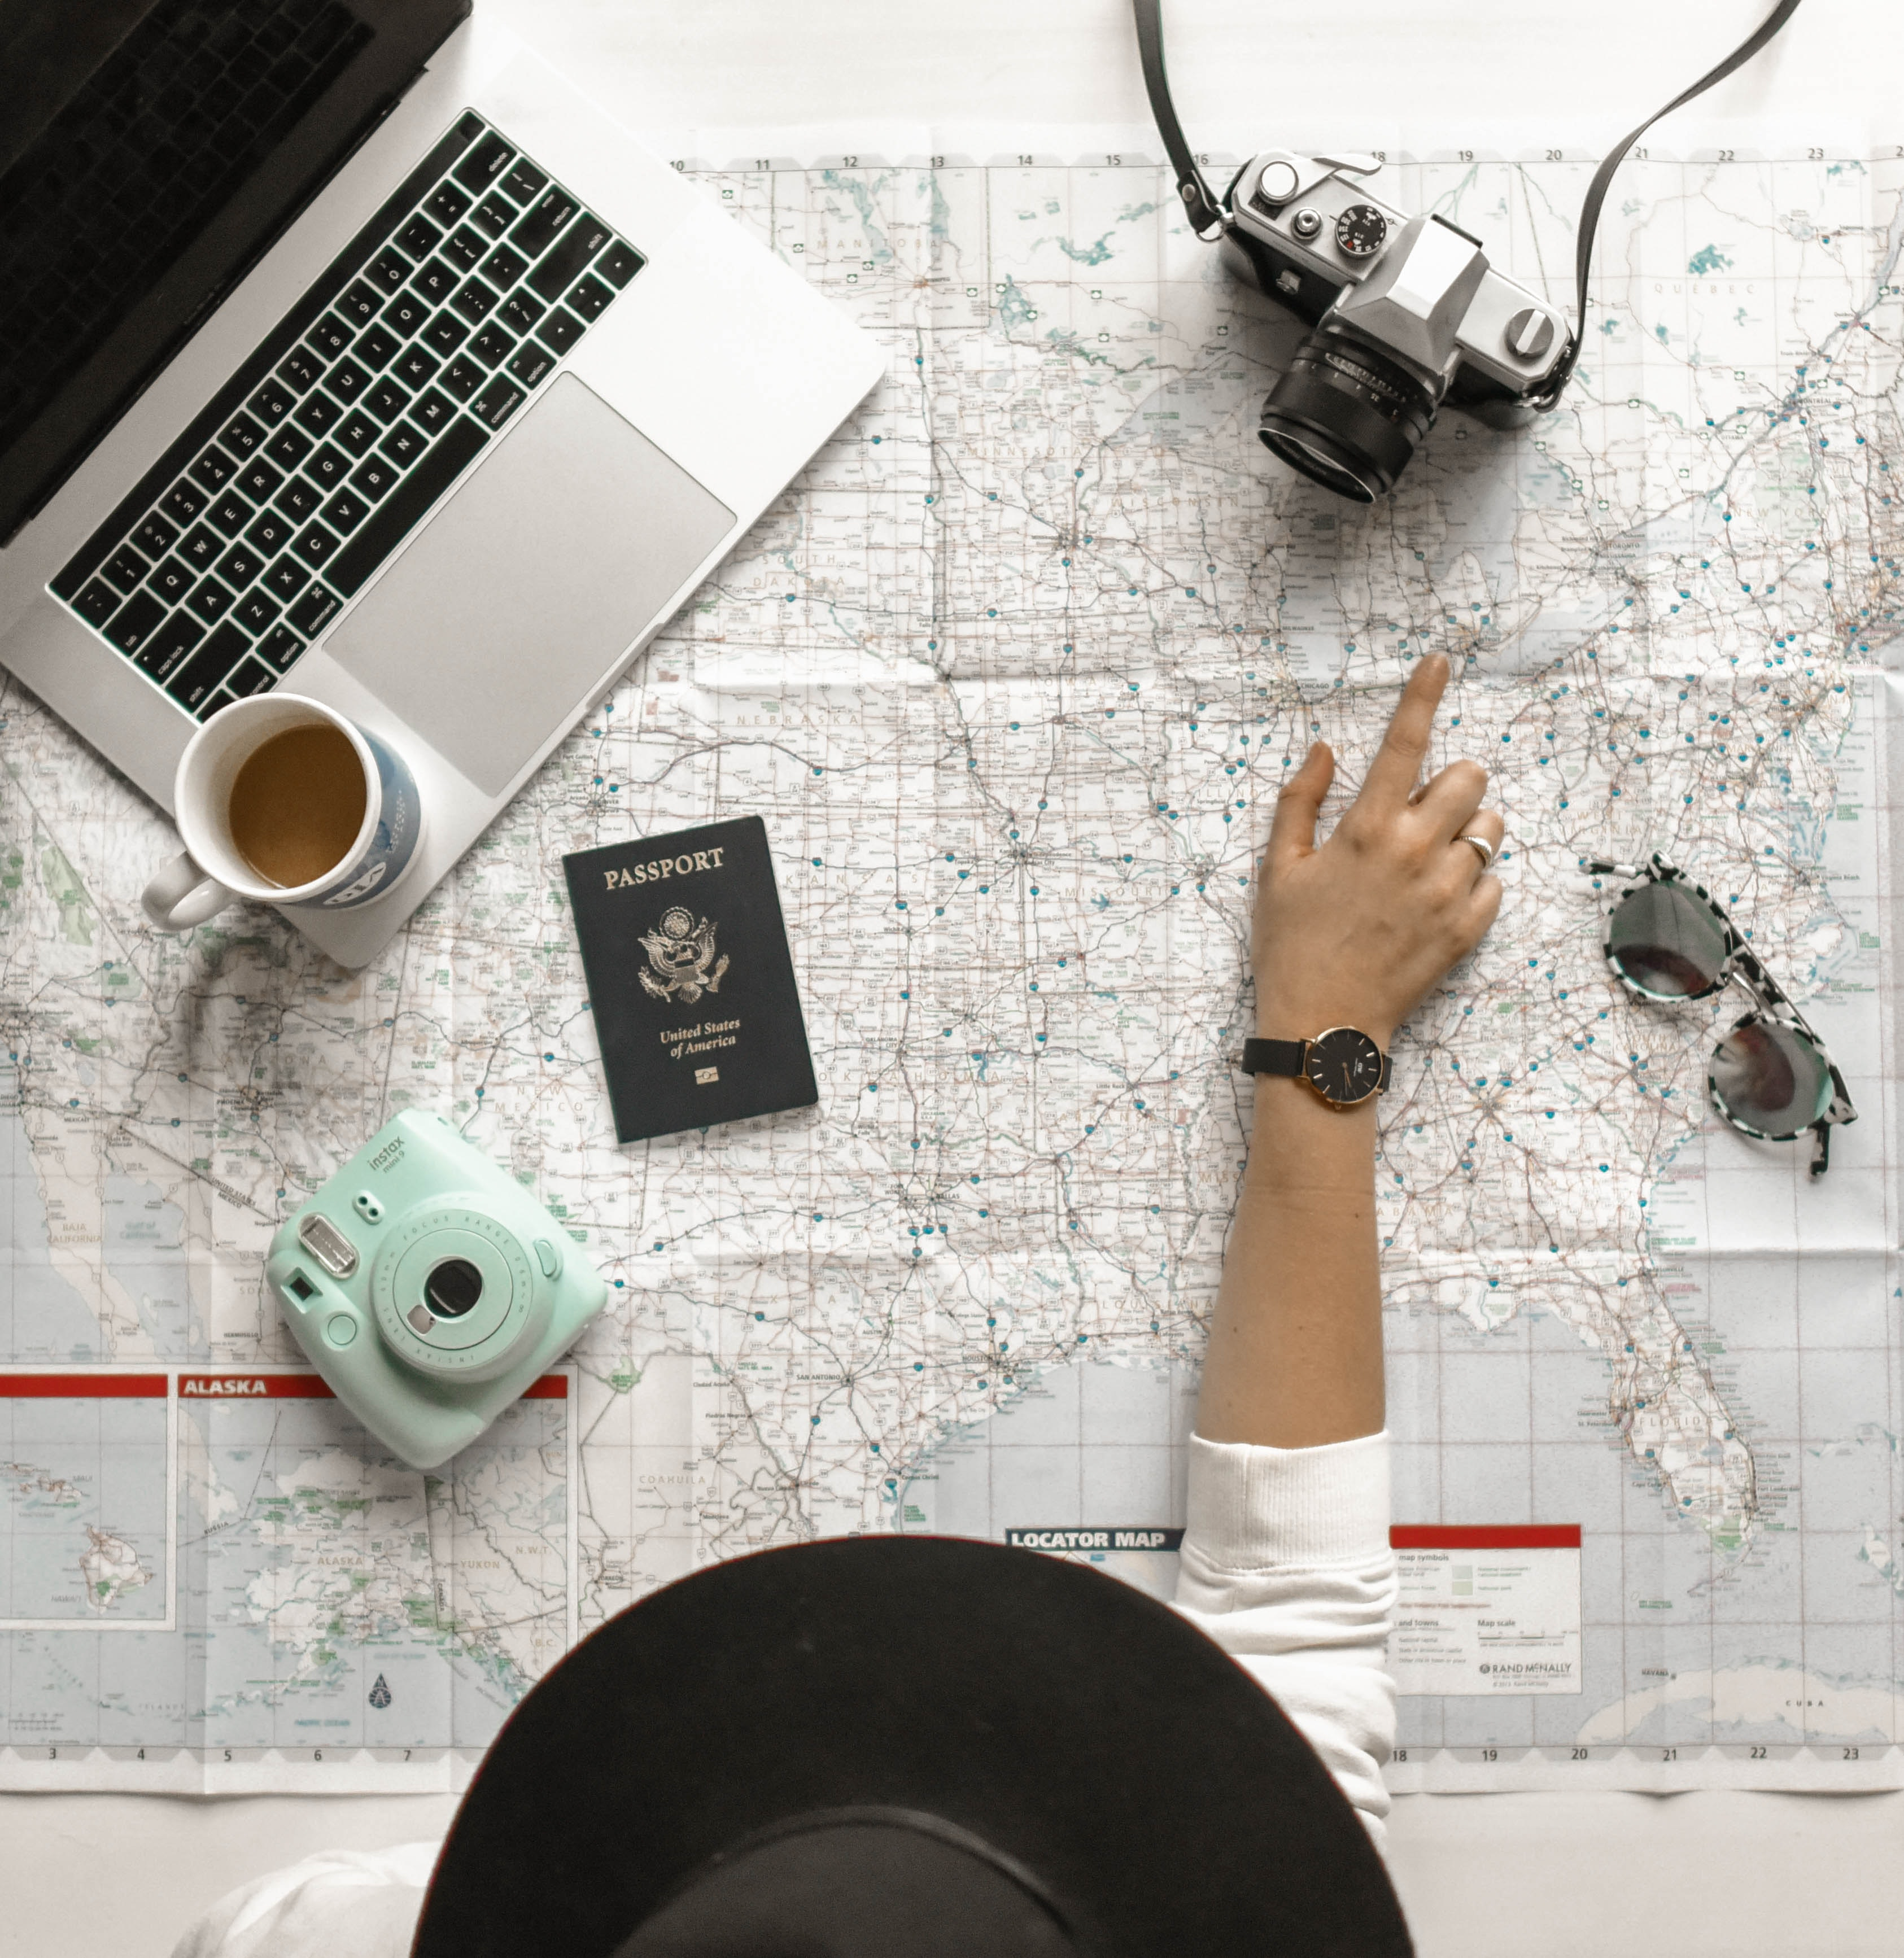 map spread out on the table with a camera, poloroid camera, passporat and sunglasses. Person pointing finer at a place on the map